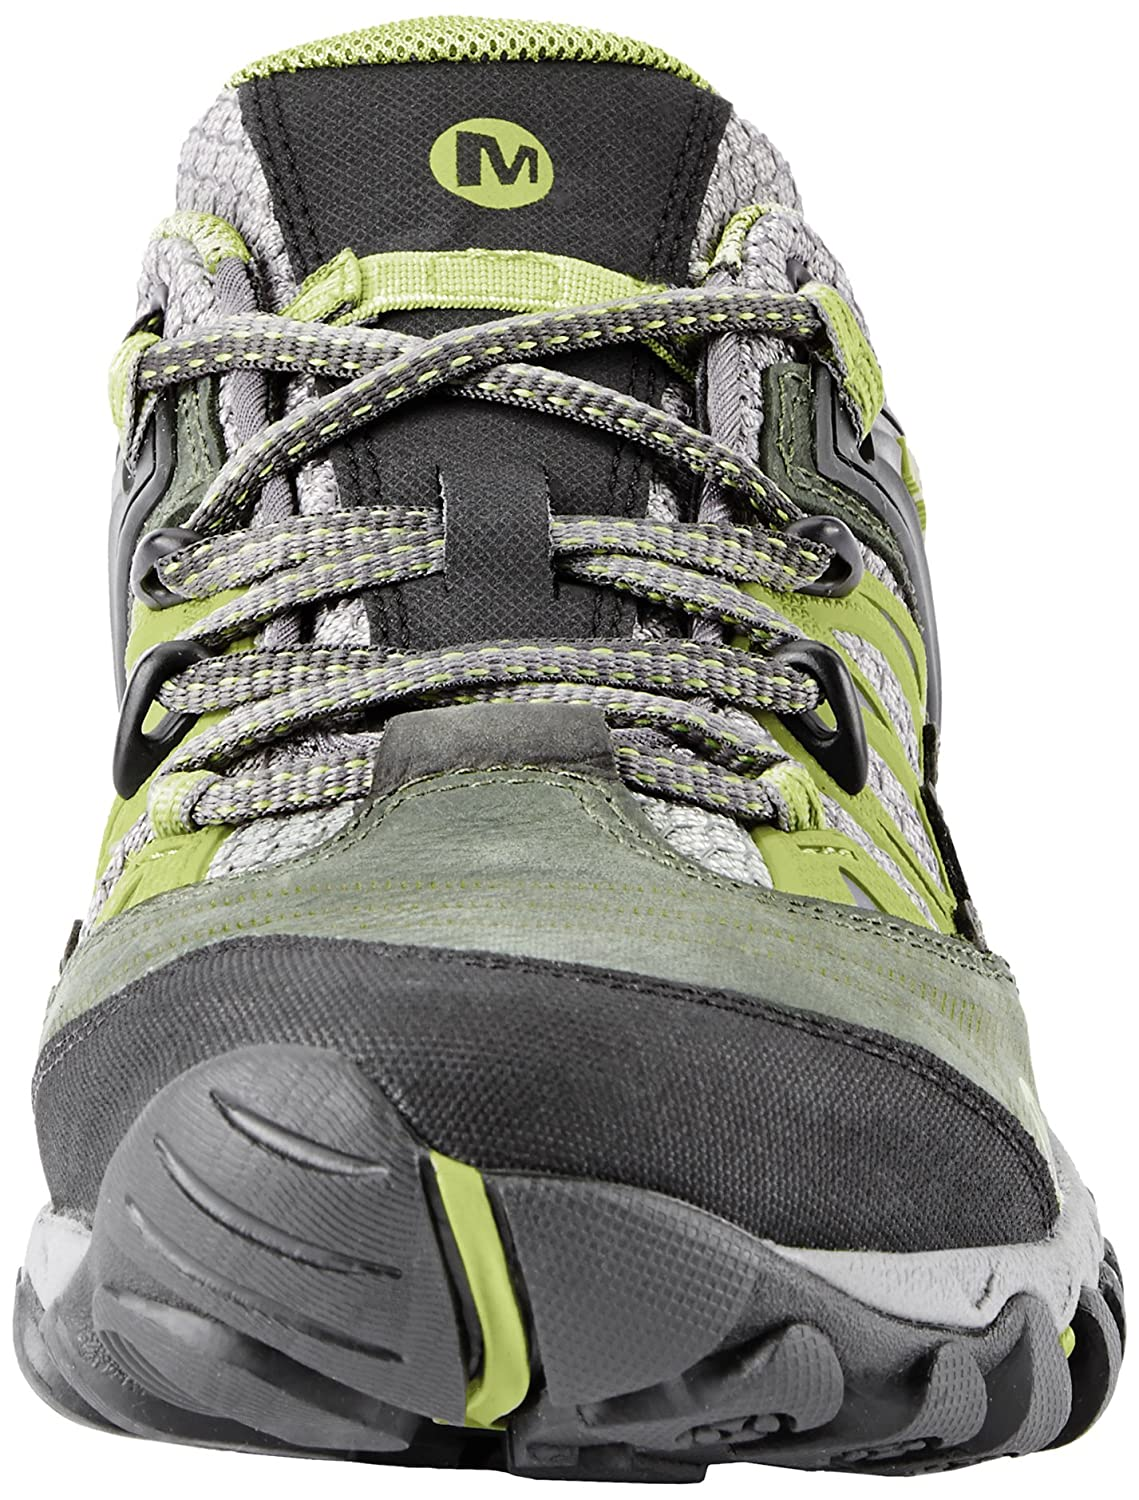 Merrell Women's All Out Blaze Hiking Shoe B00D1N09AY 6 B(M) US|Charcoal/Moss